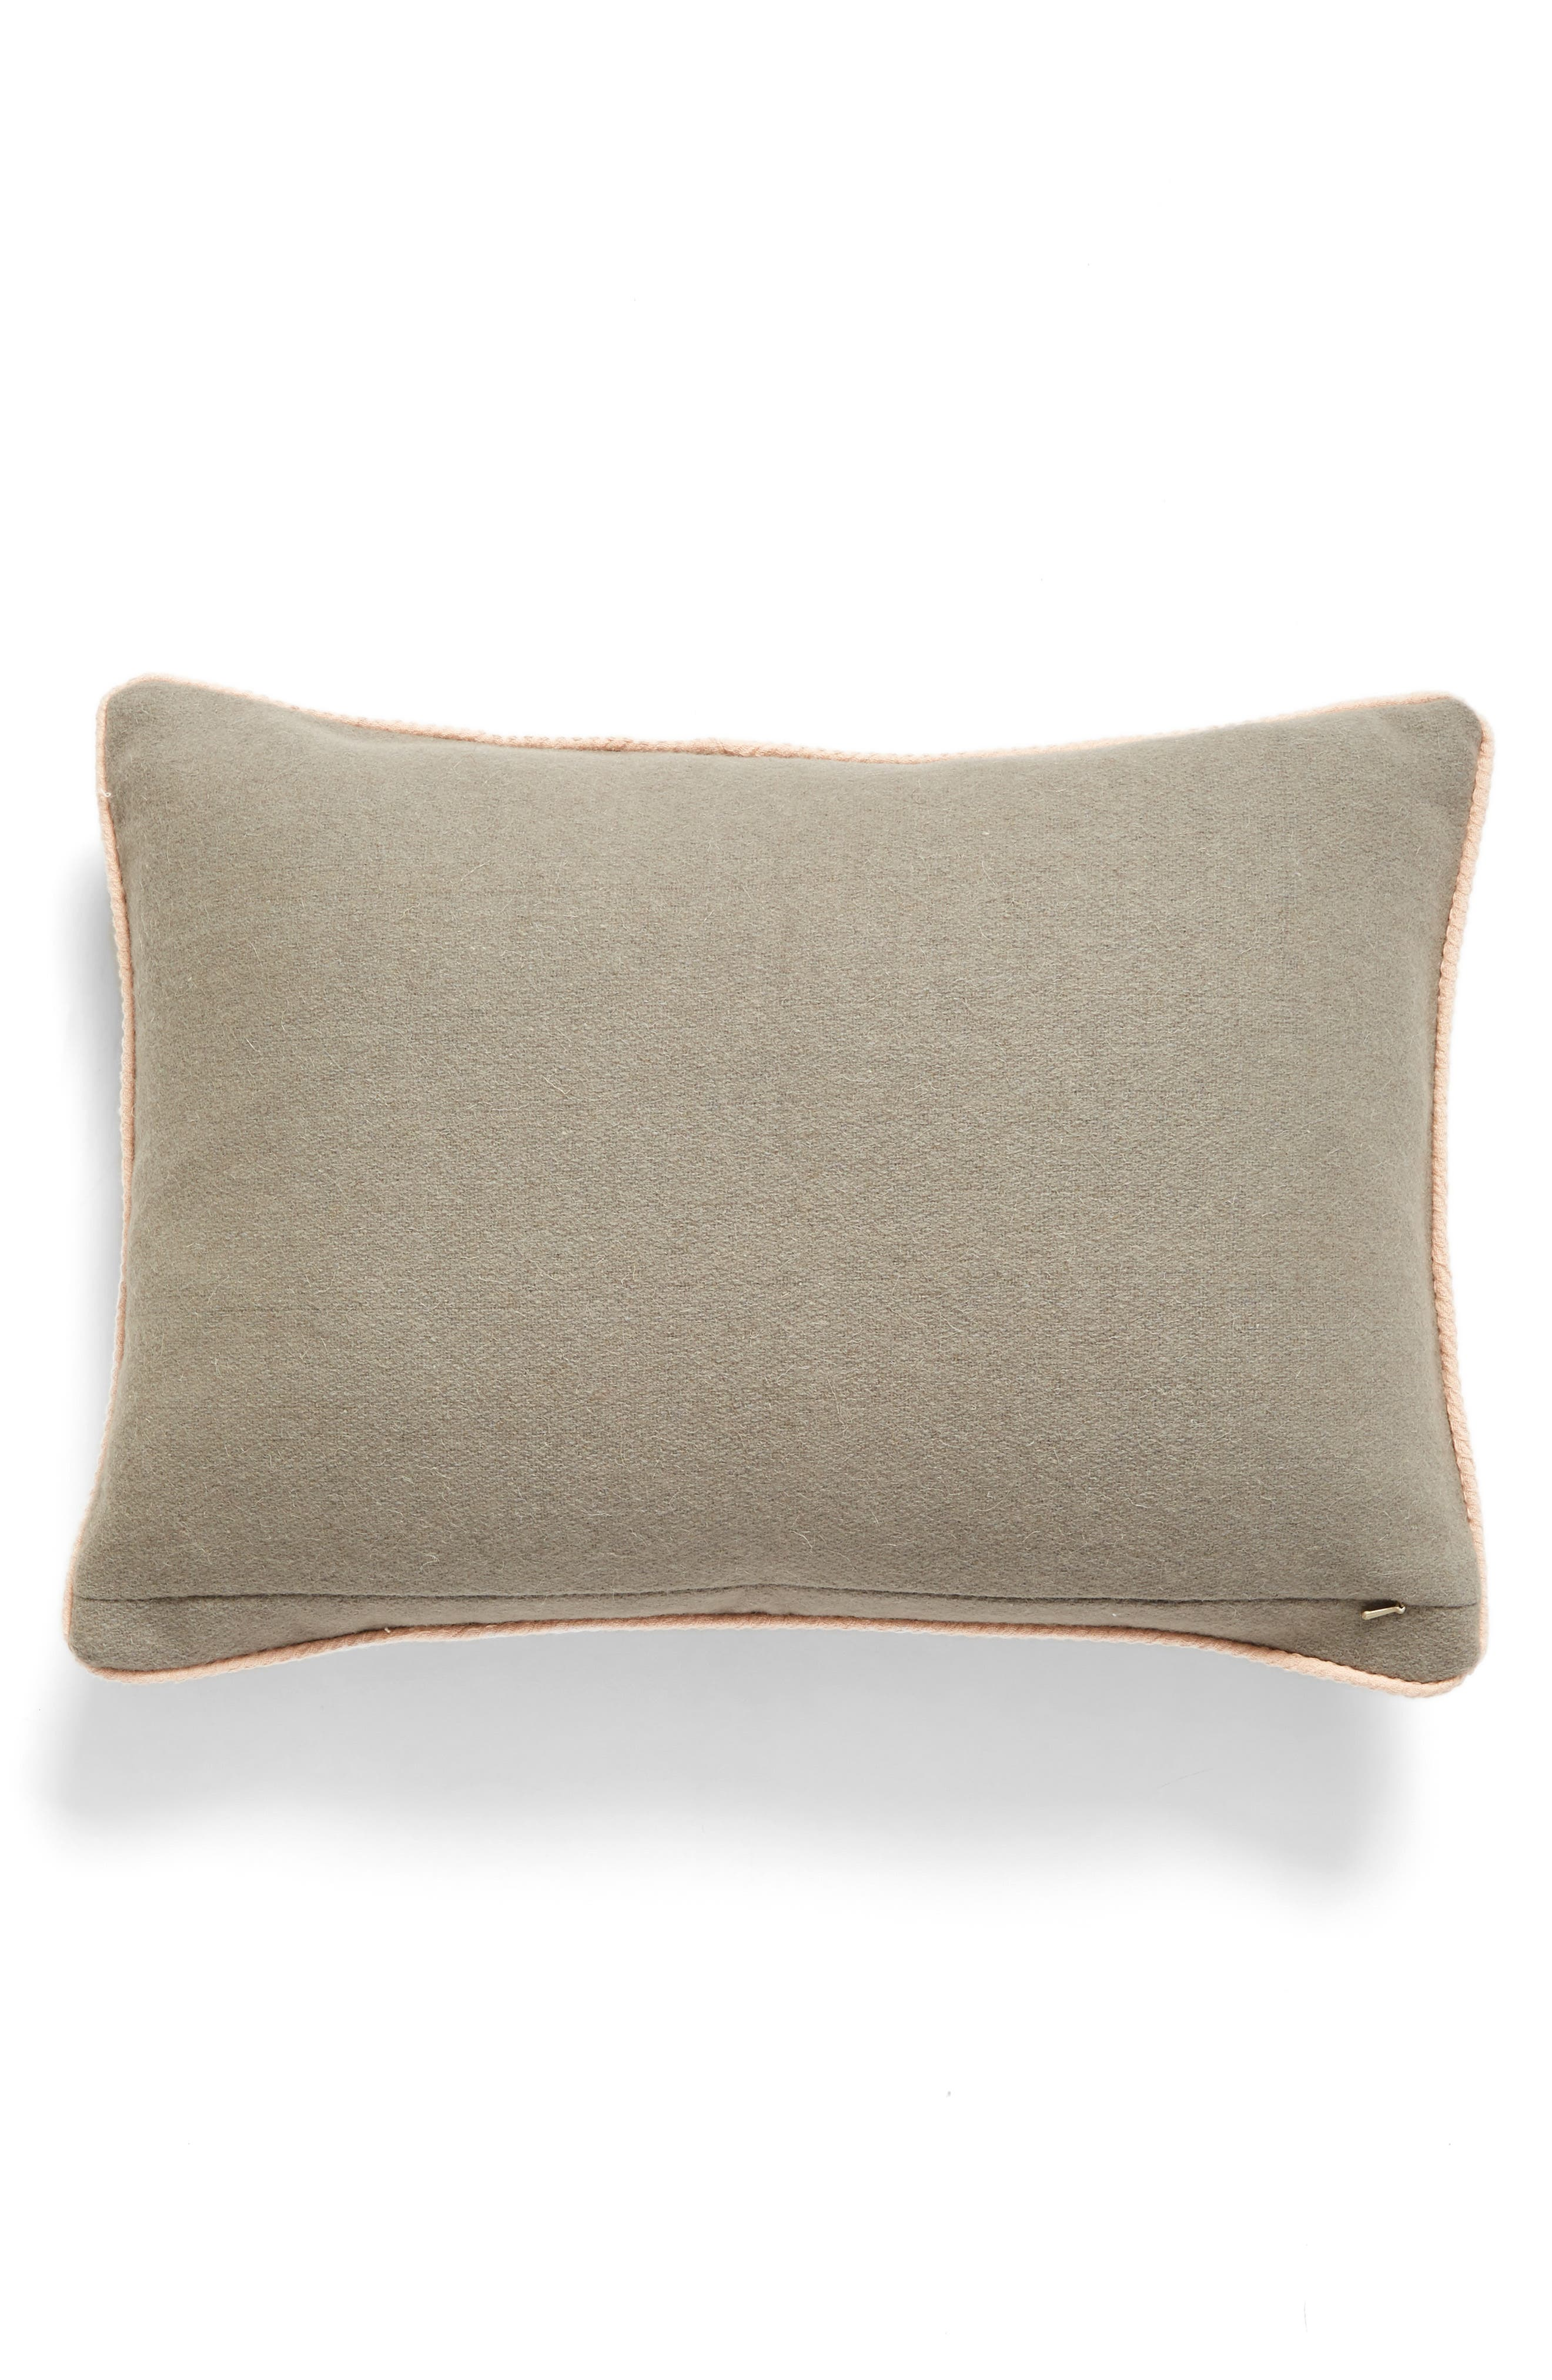 XOXO Accent Pillow,                             Alternate thumbnail 2, color,                             Grey Heather Multi